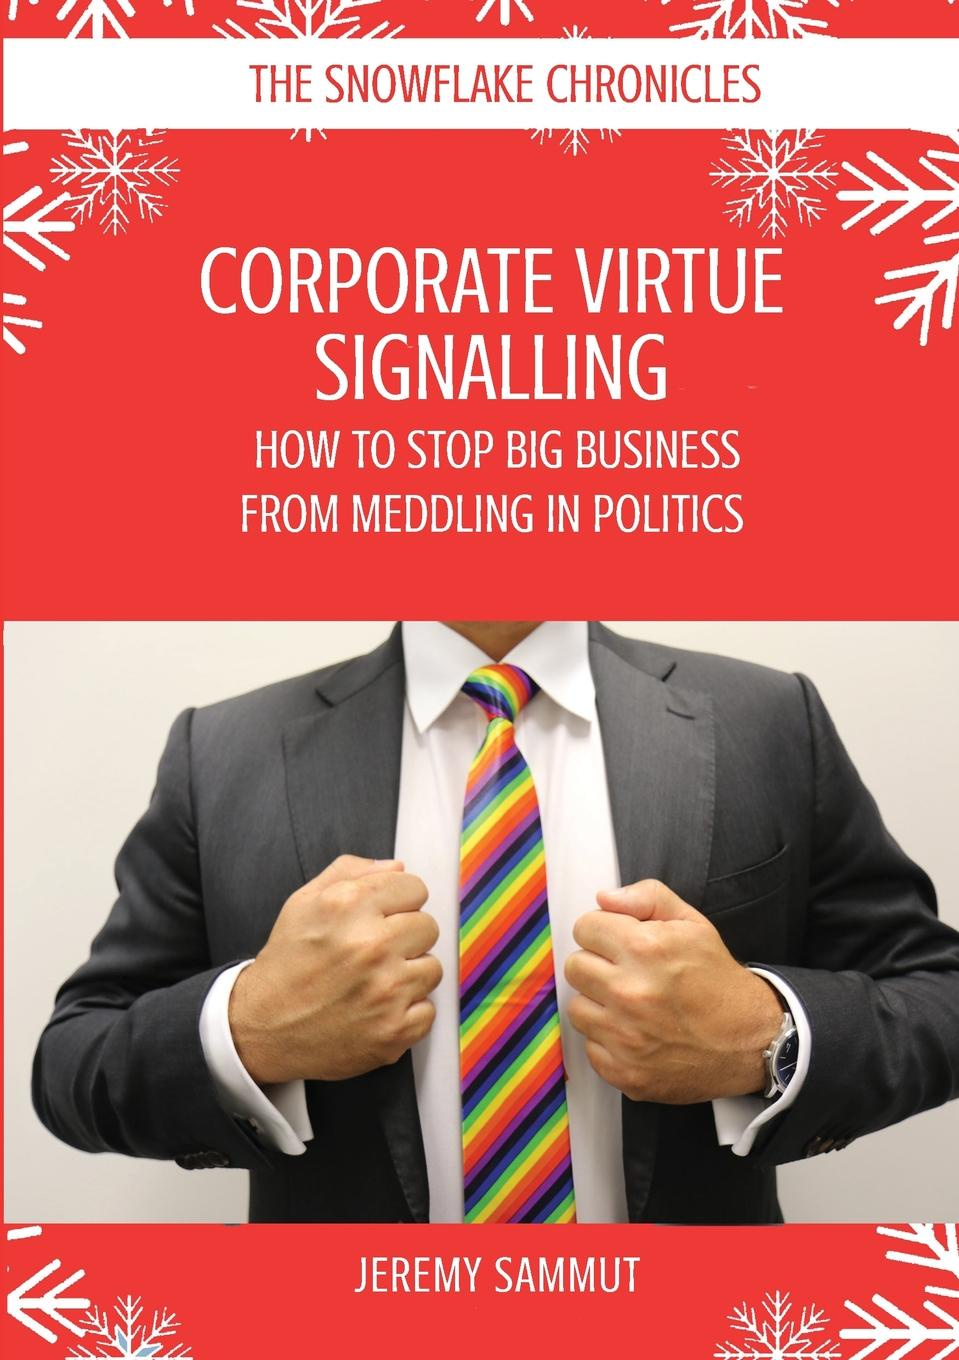 Jeremy Sammut CORPORATE VIRTUE SIGNALLING. HOW TO STOP BIG BUSINESS FROM MEDDLING IN POLITICS progressive business